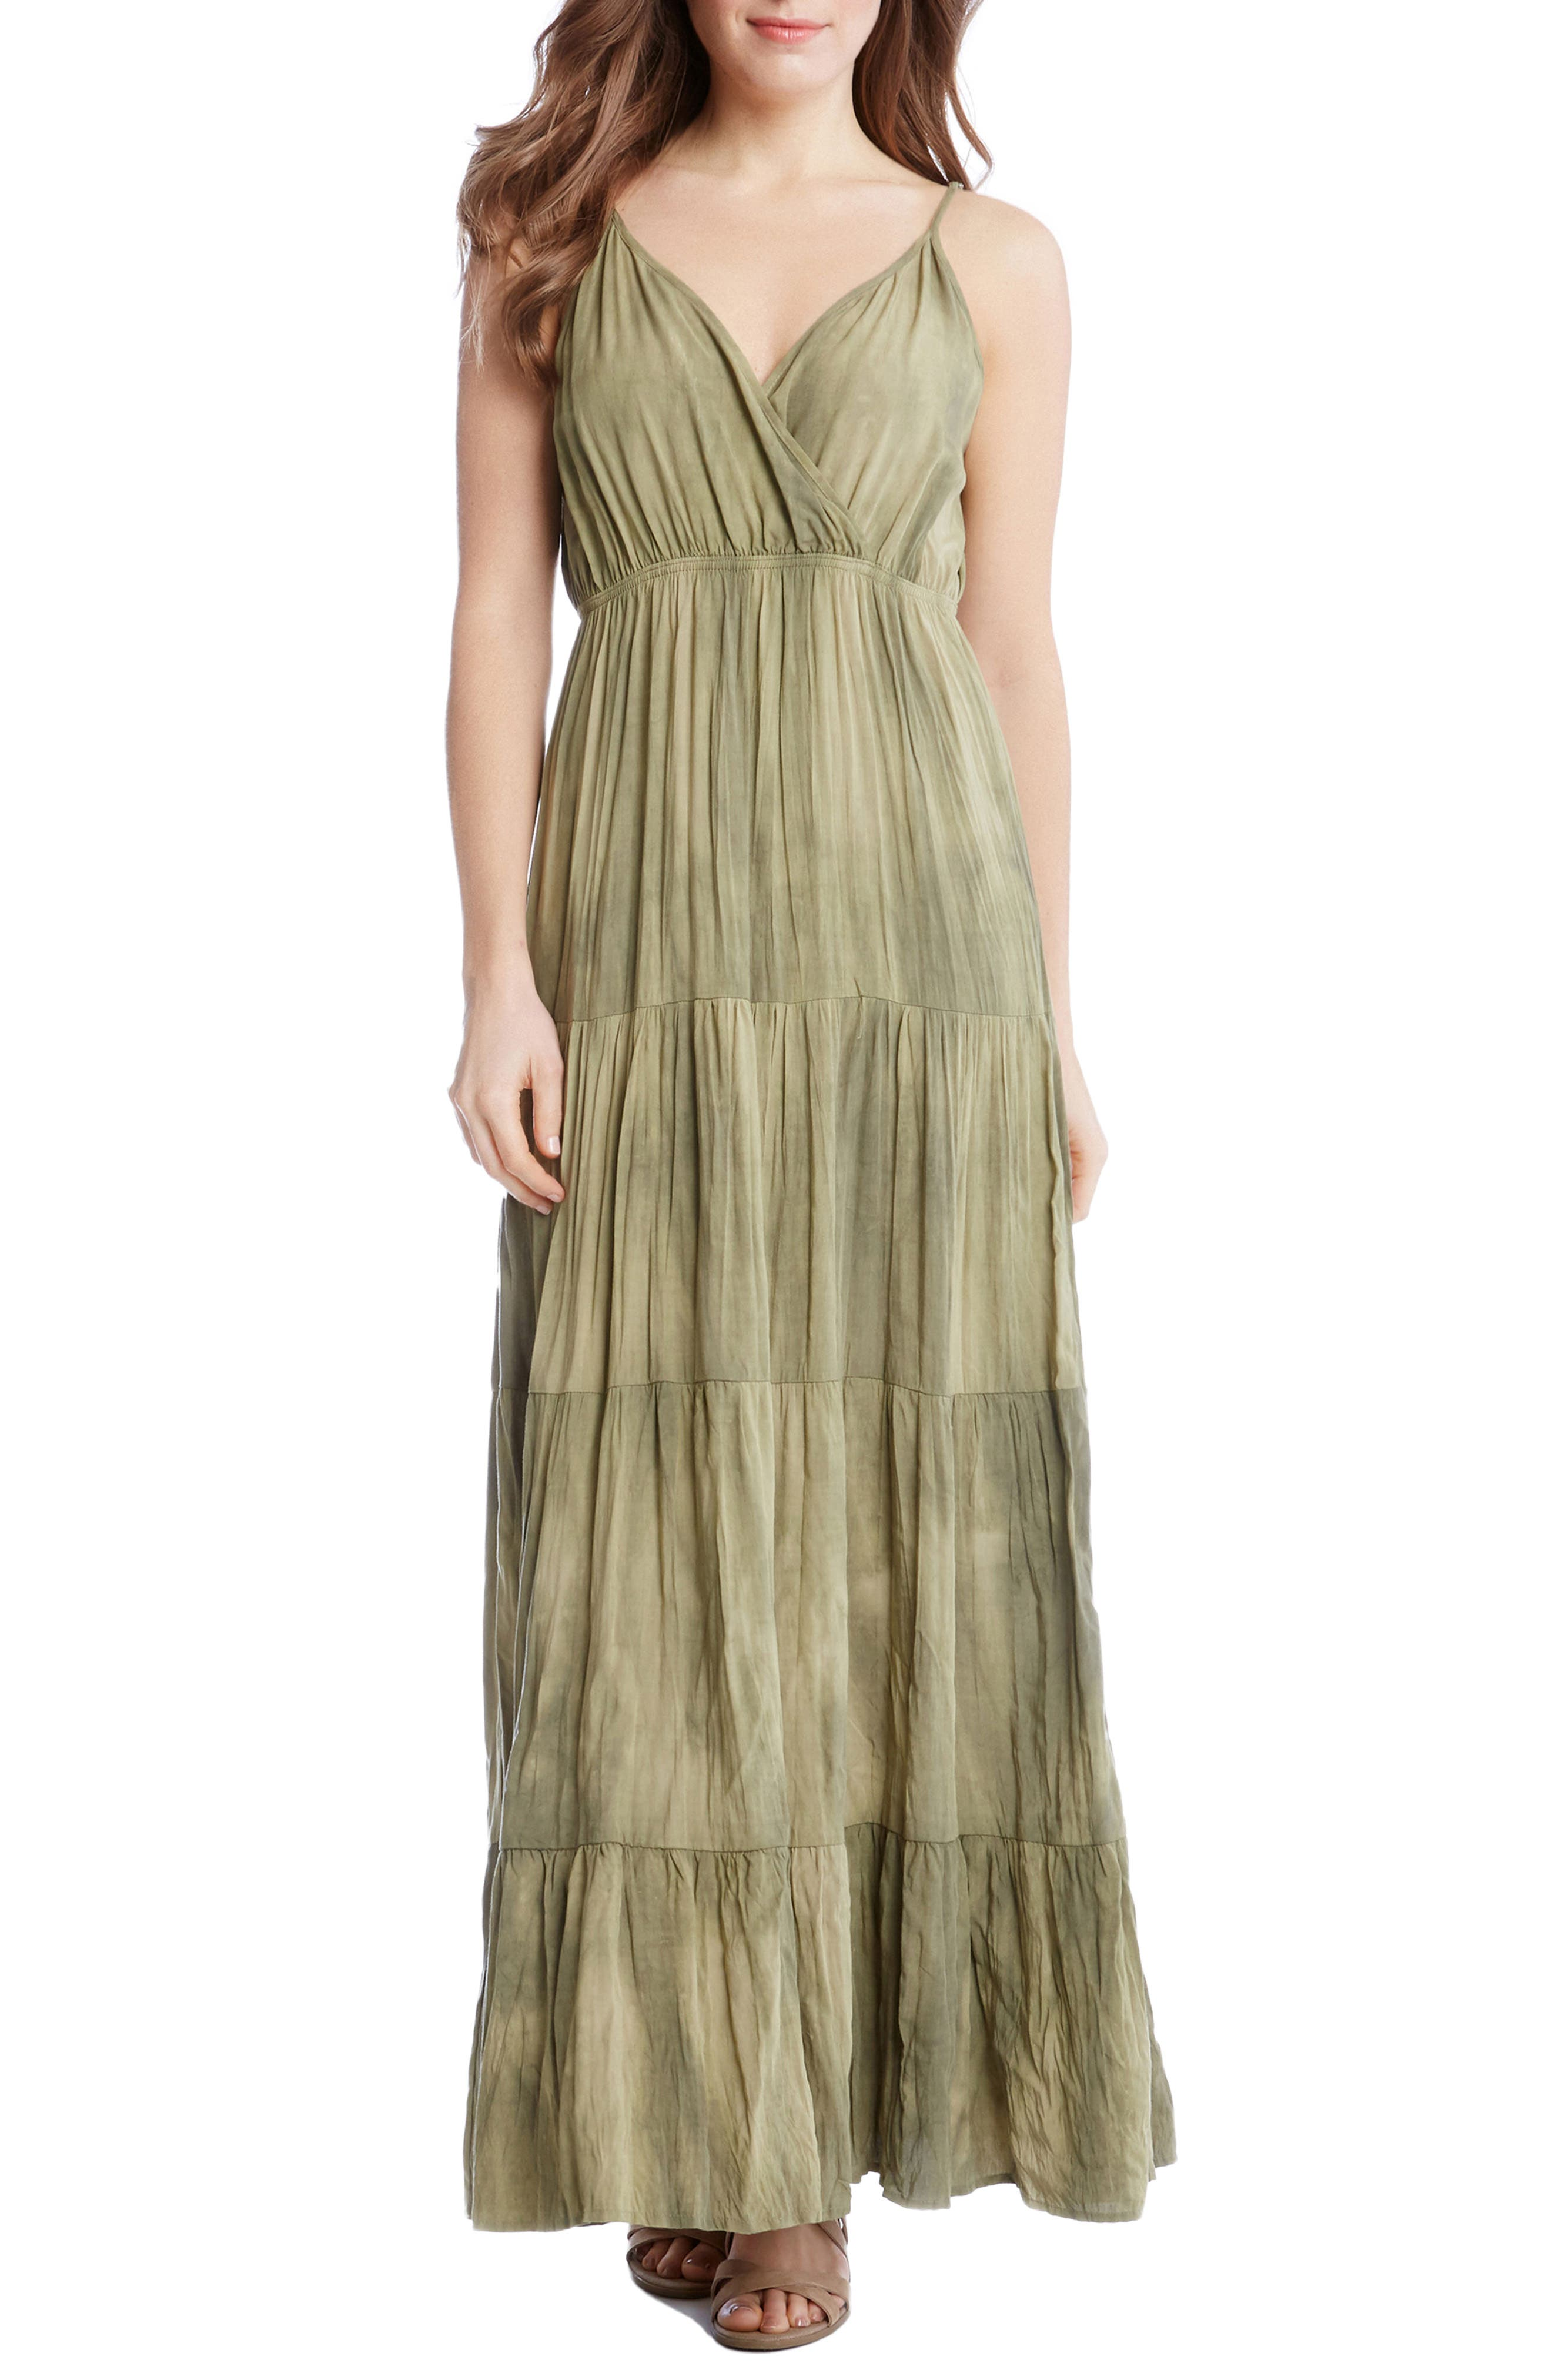 Tiered Maxi Dress,                         Main,                         color, Tie Dye